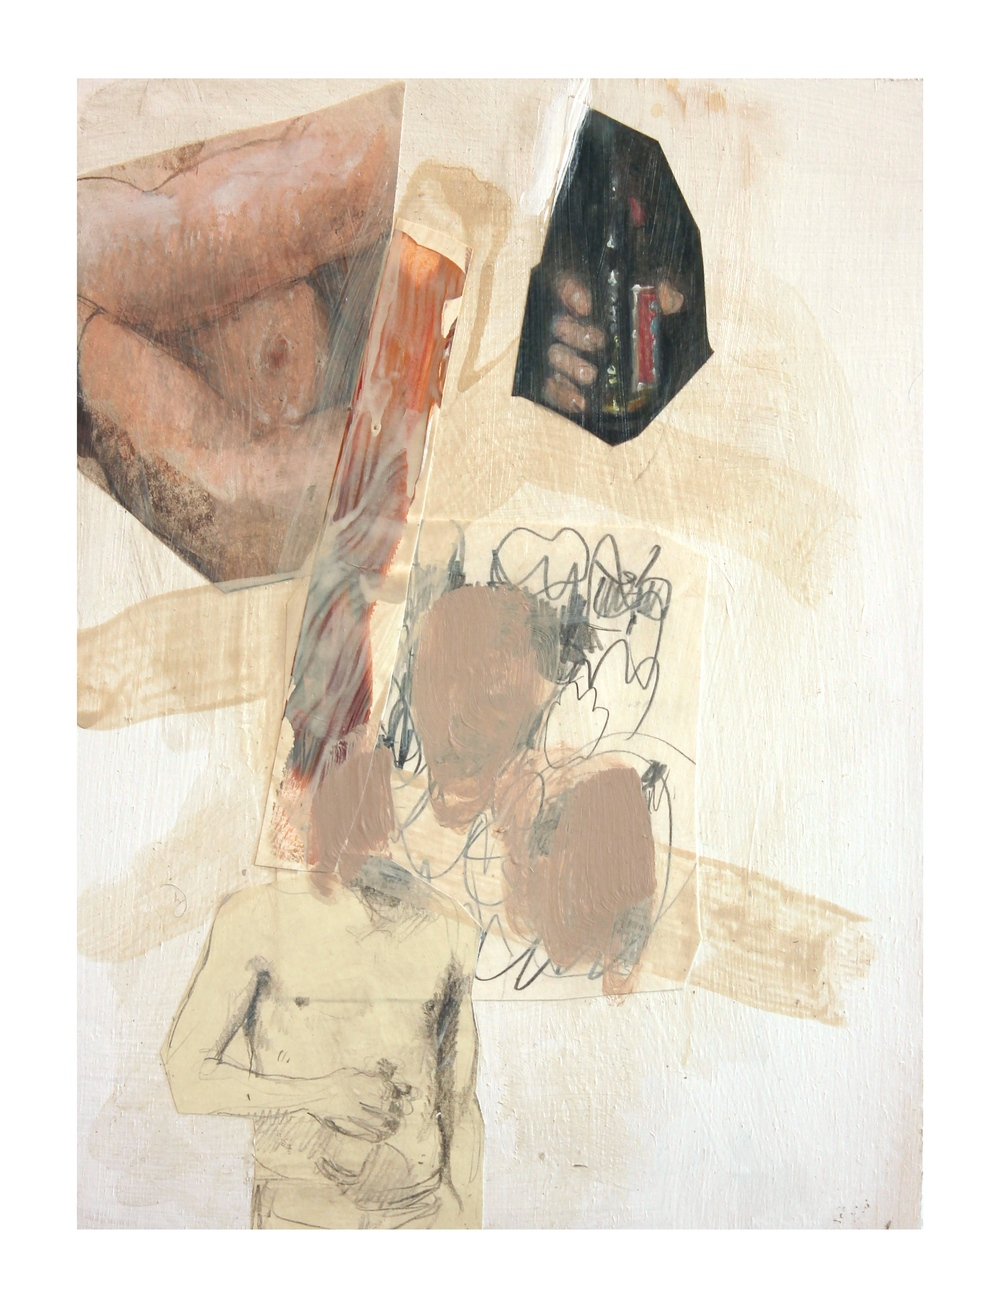 """Bottle"" (2015)<br>Colored Pencil, Acrylic, and Paper on Panel, 12 x 9 in."